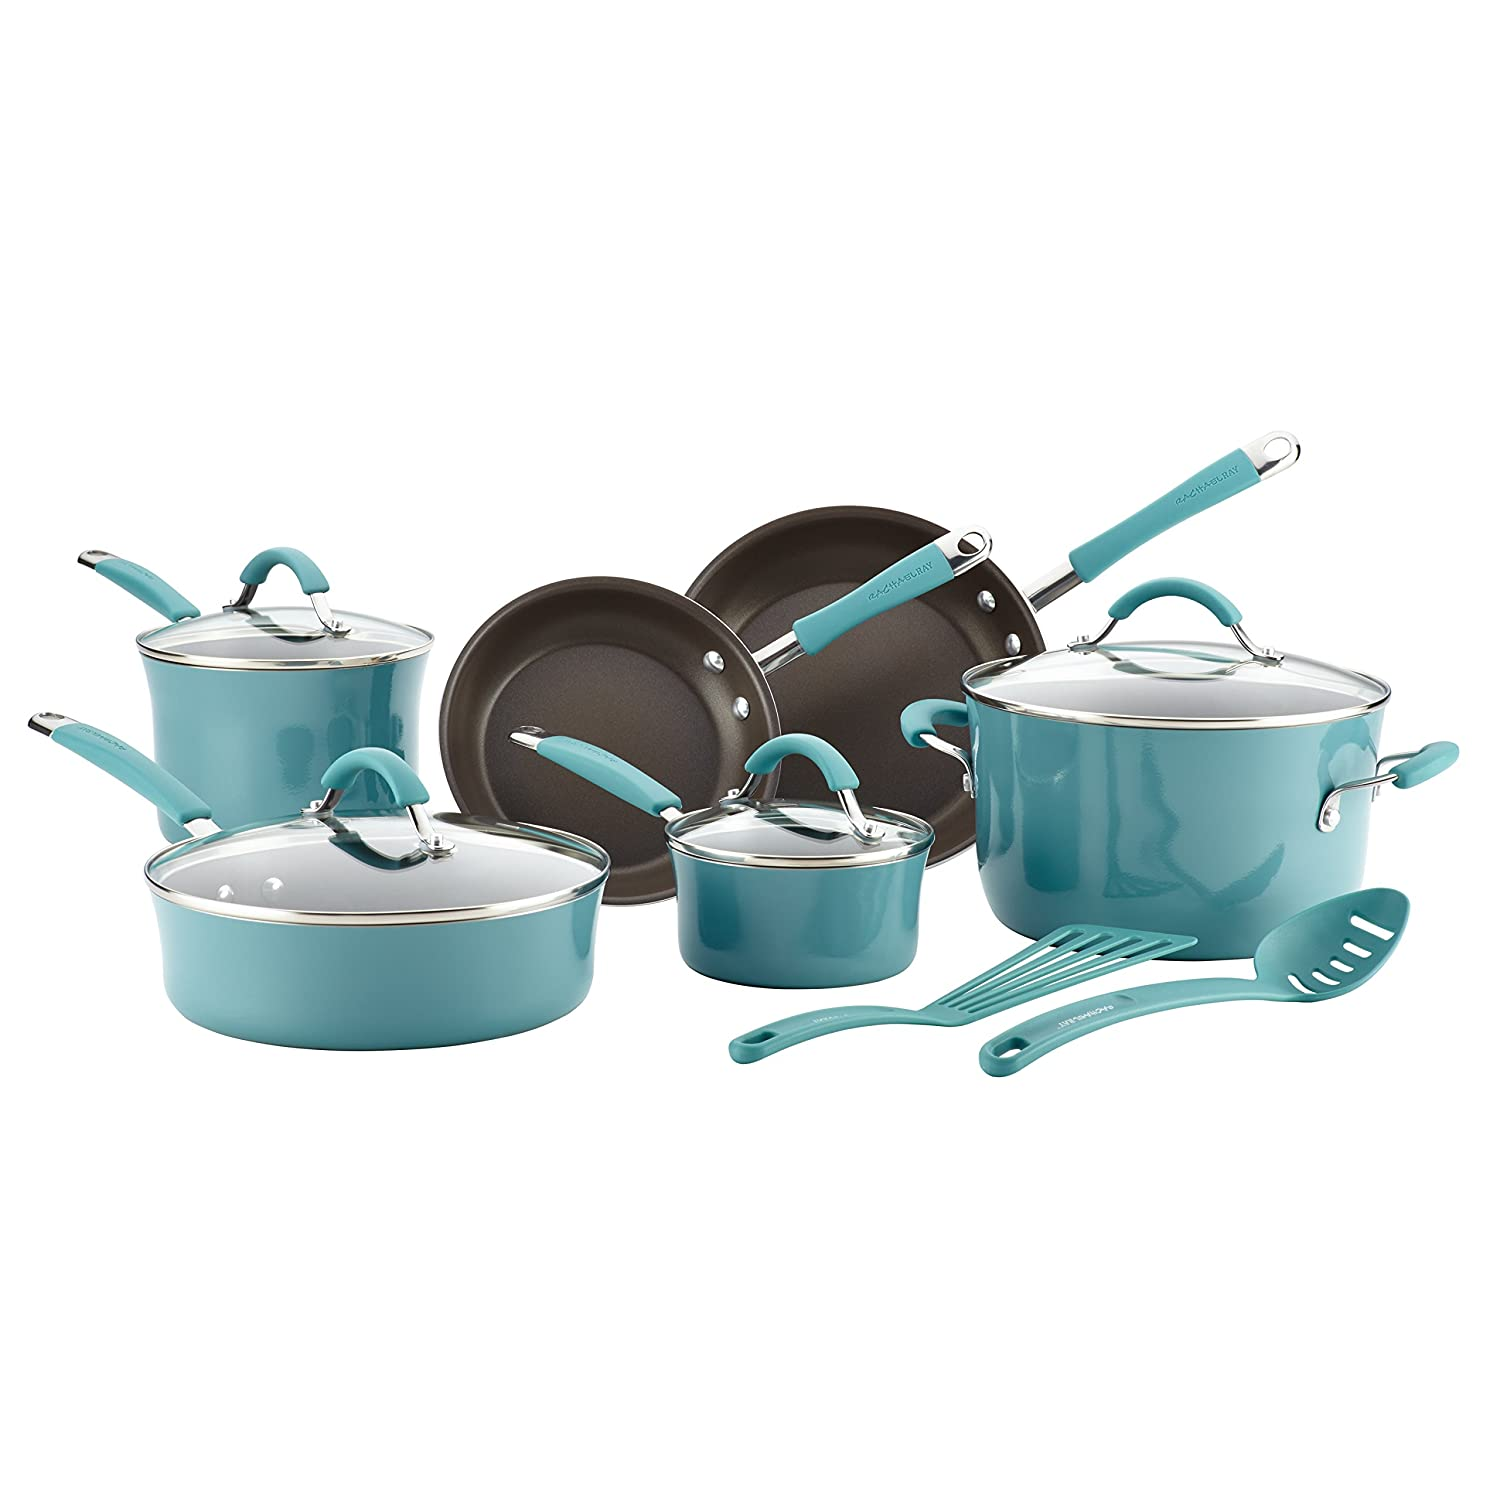 Amazon.com: Rachael Ray Cucina Hard Porcelain Enamel Nonstick ...